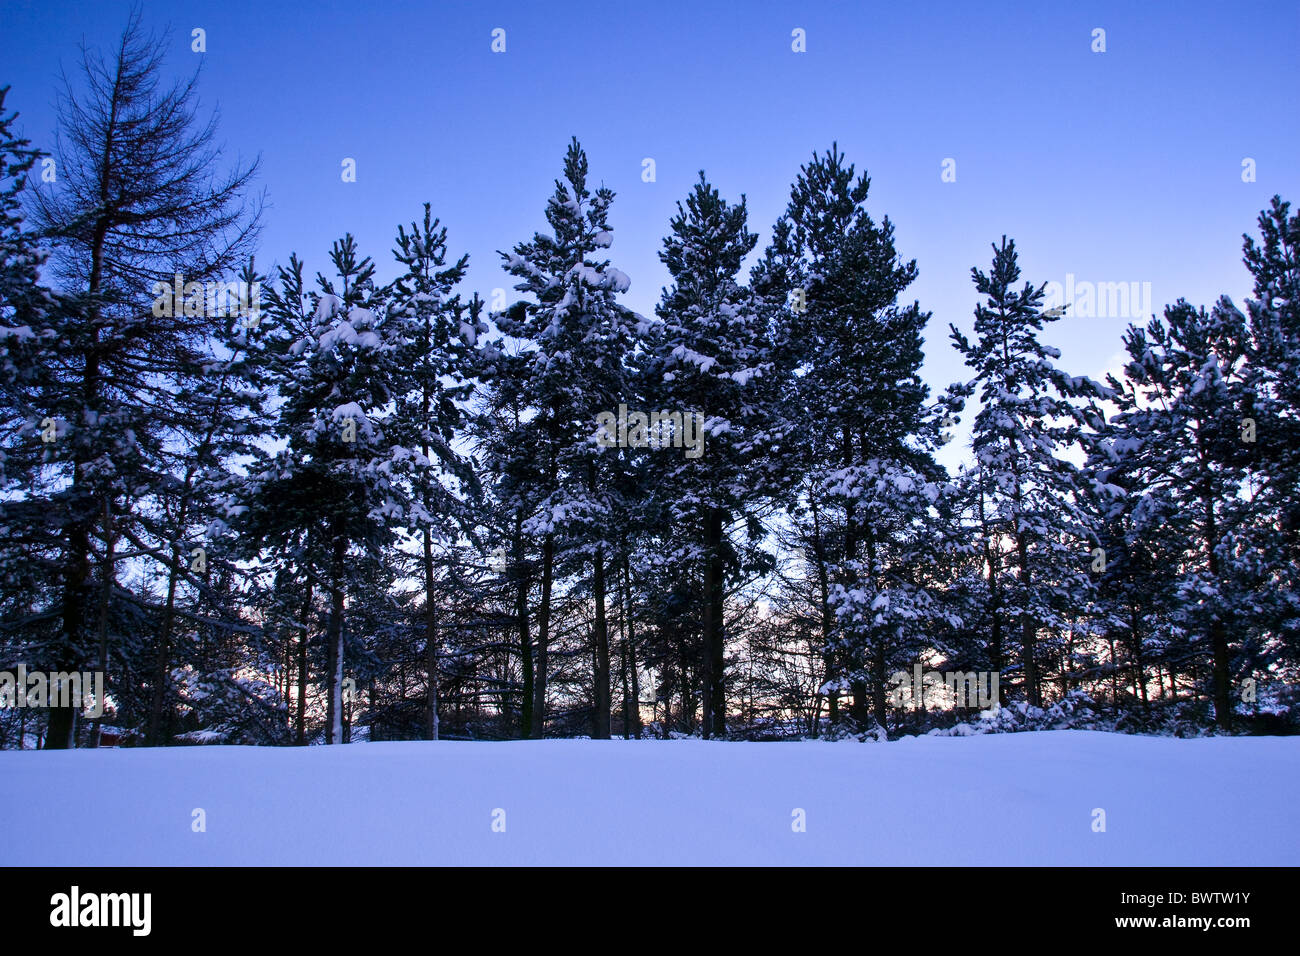 A winter sunset landscape with snow covered trees in urban Dundee,UK Stock Photo